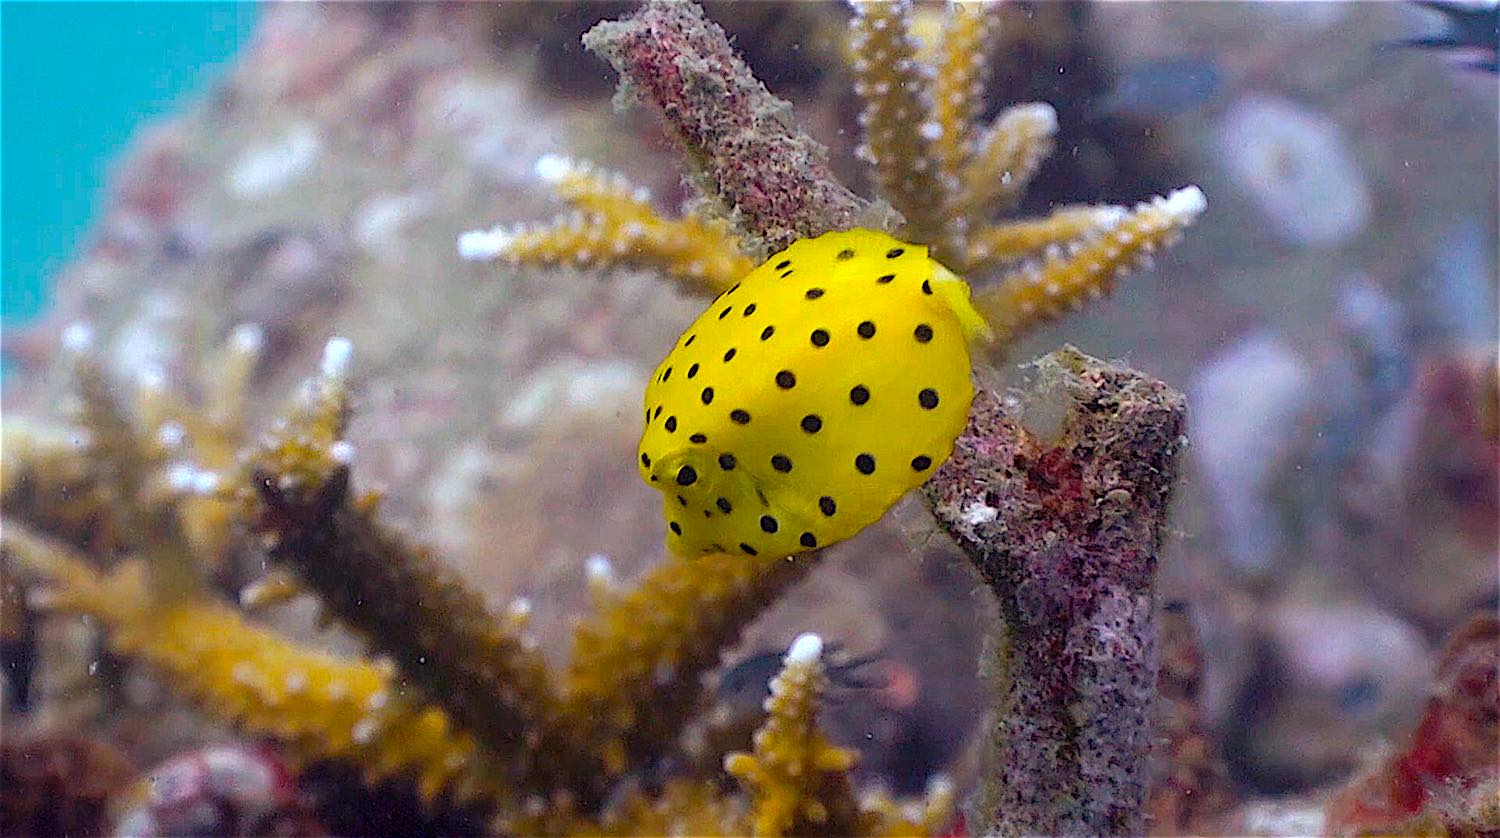 www.thefunkyturtle.com Buoyancy world dive site koh tao boxfish